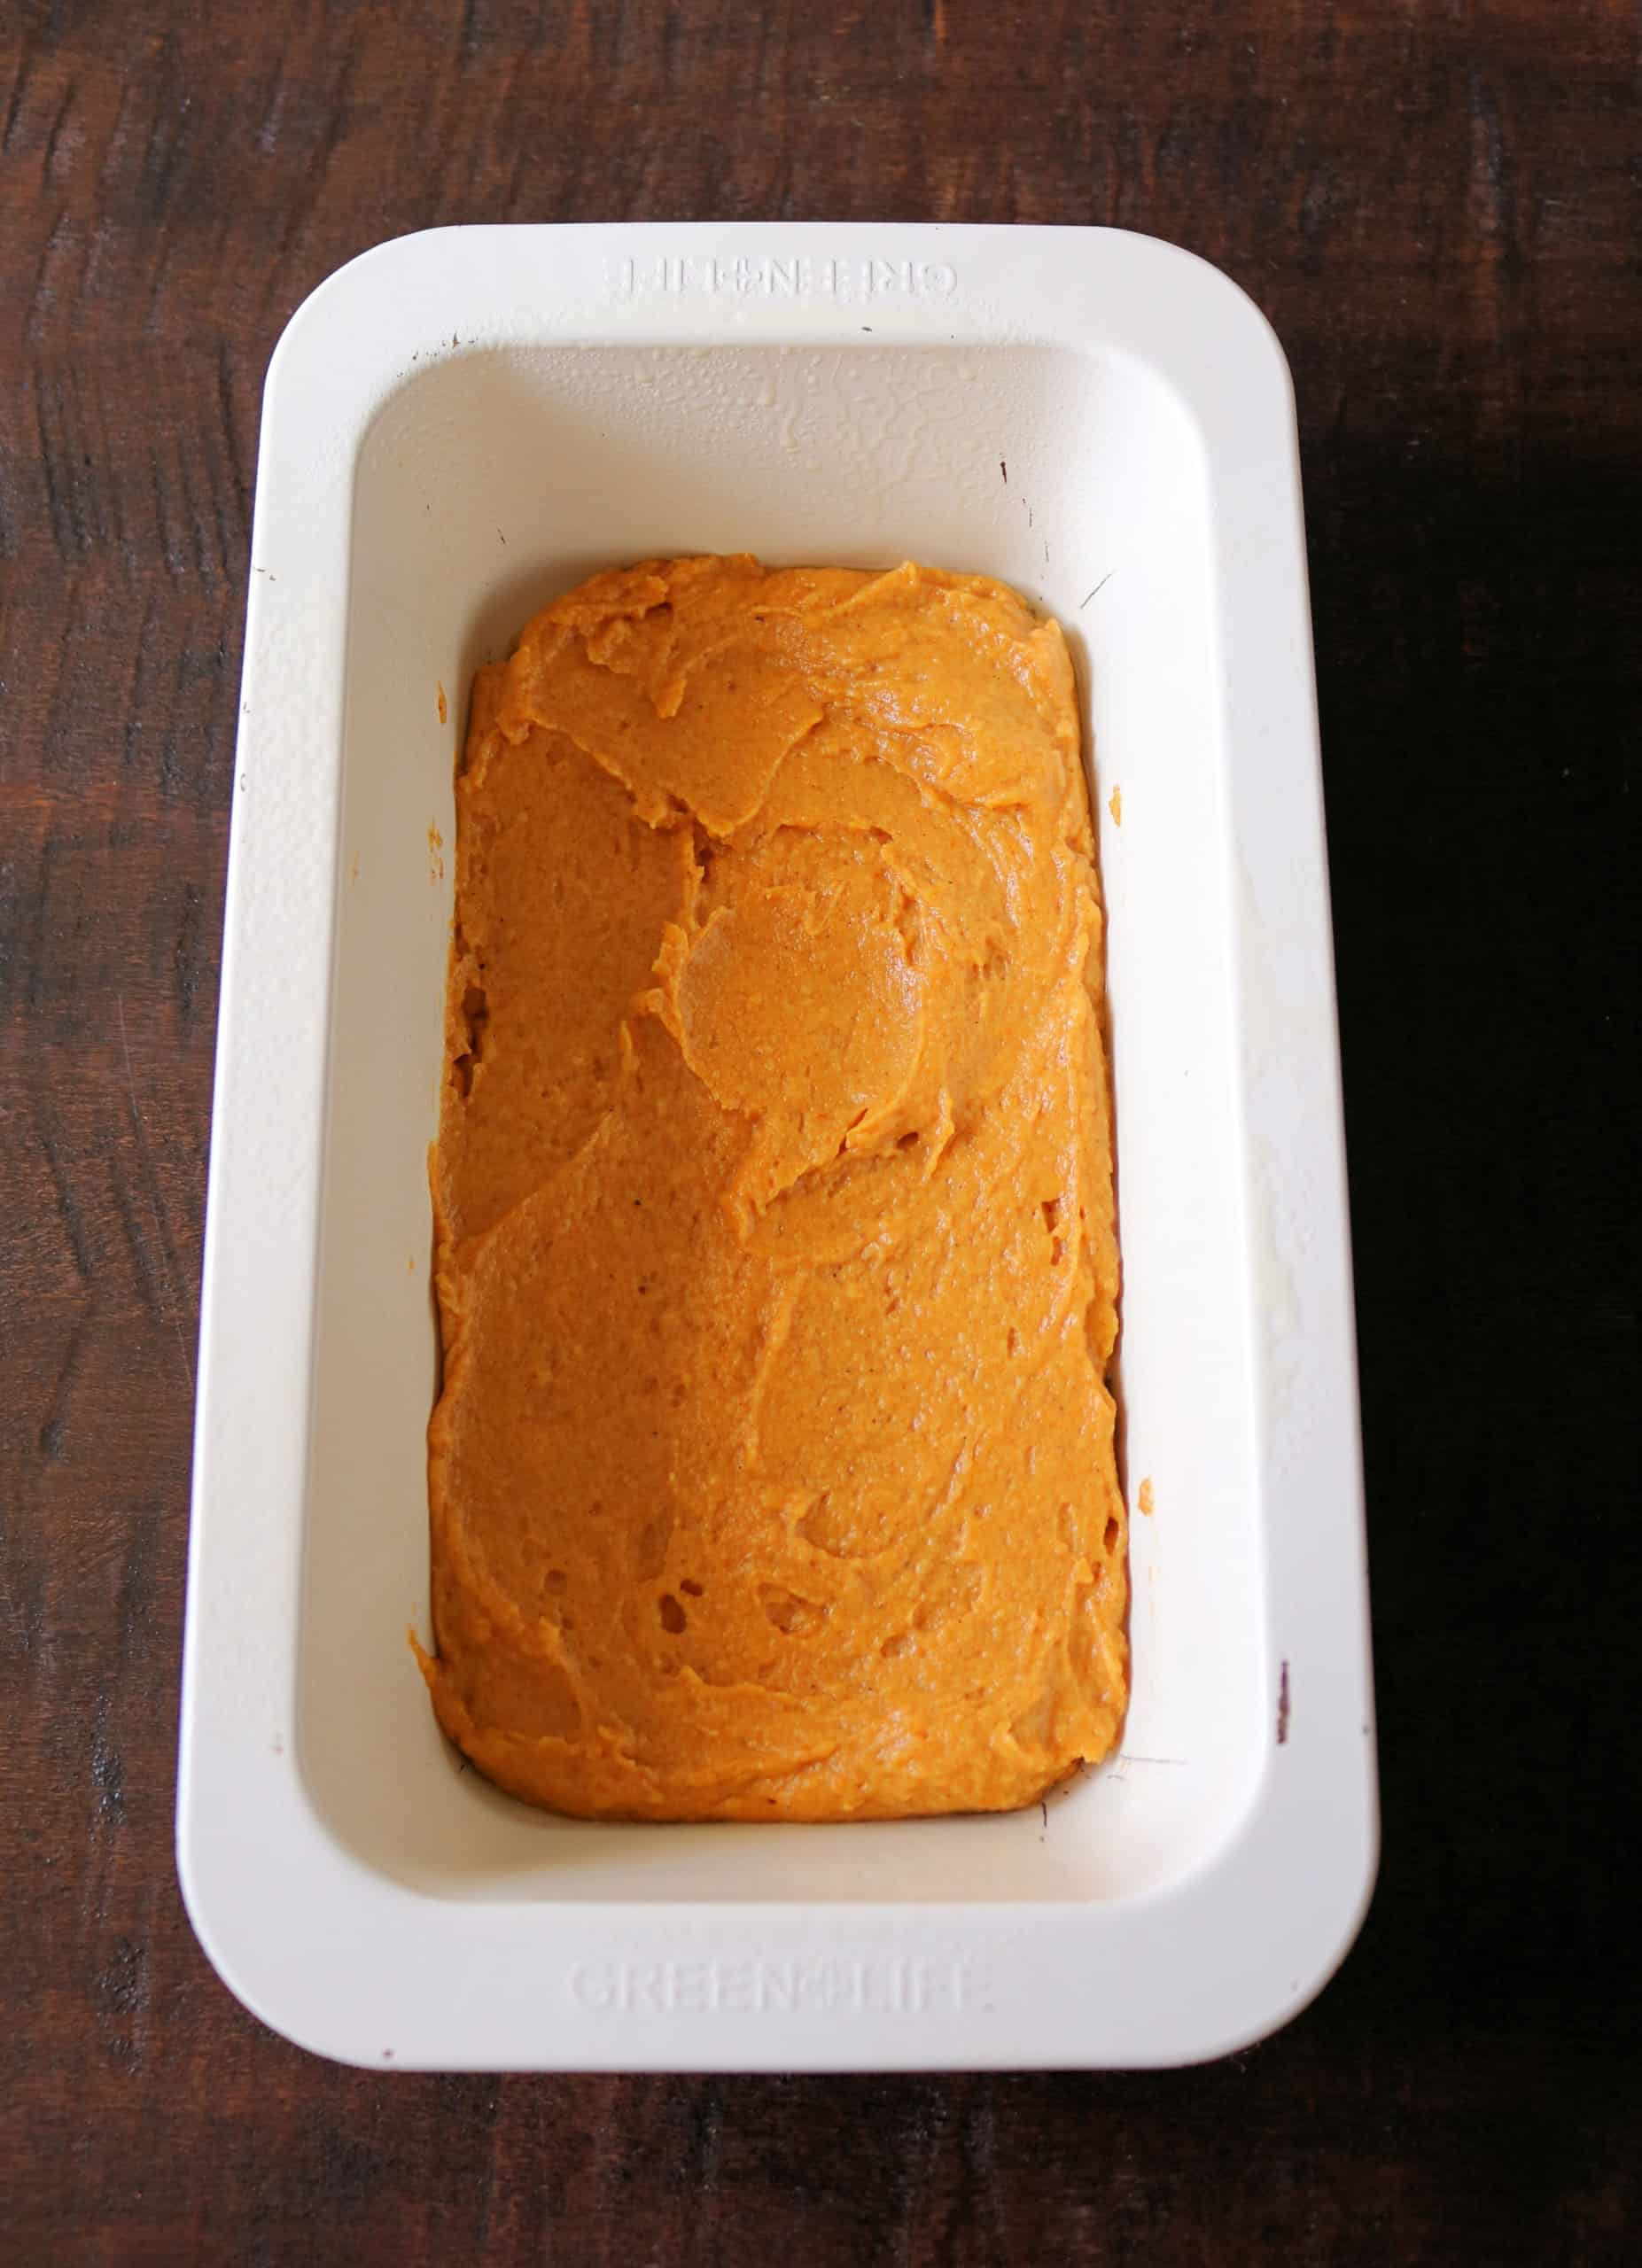 This soft, moist, and delicious pumpkin bread is the BEST Pumpkin Cream Cheese Bread you'll ever eat! It's made easy with pumpkin puree, pumpkin pie spice, and has beautiful swirls of cream cheese baked inside that tastes like cheesecake! #pumpkinbread #falldesserts #pumpkindessert #bread